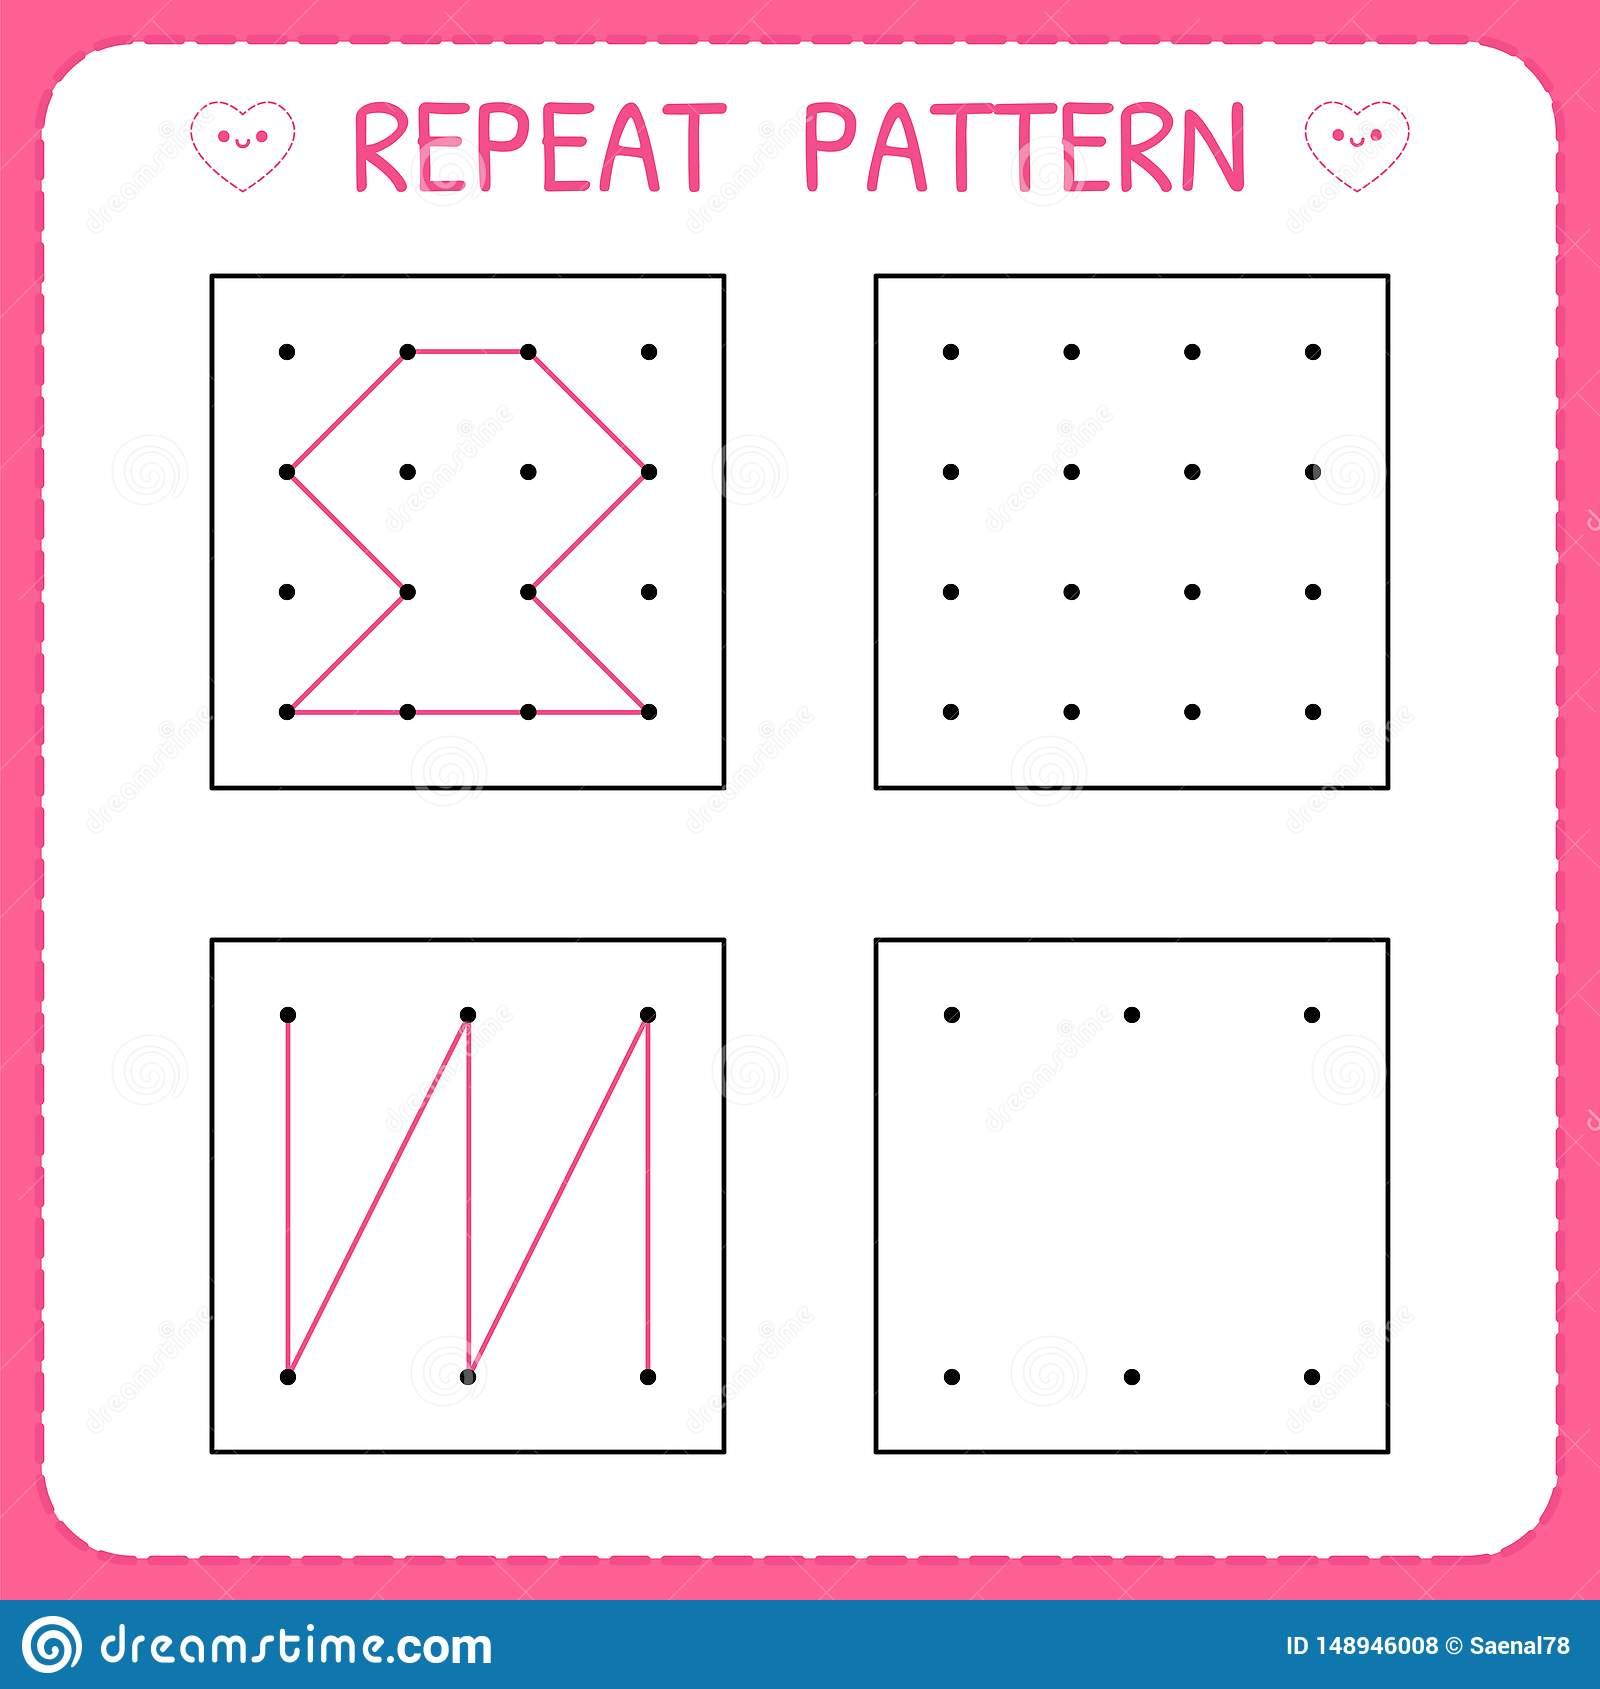 Repeat Pattern Educational Games For Practicing Motor